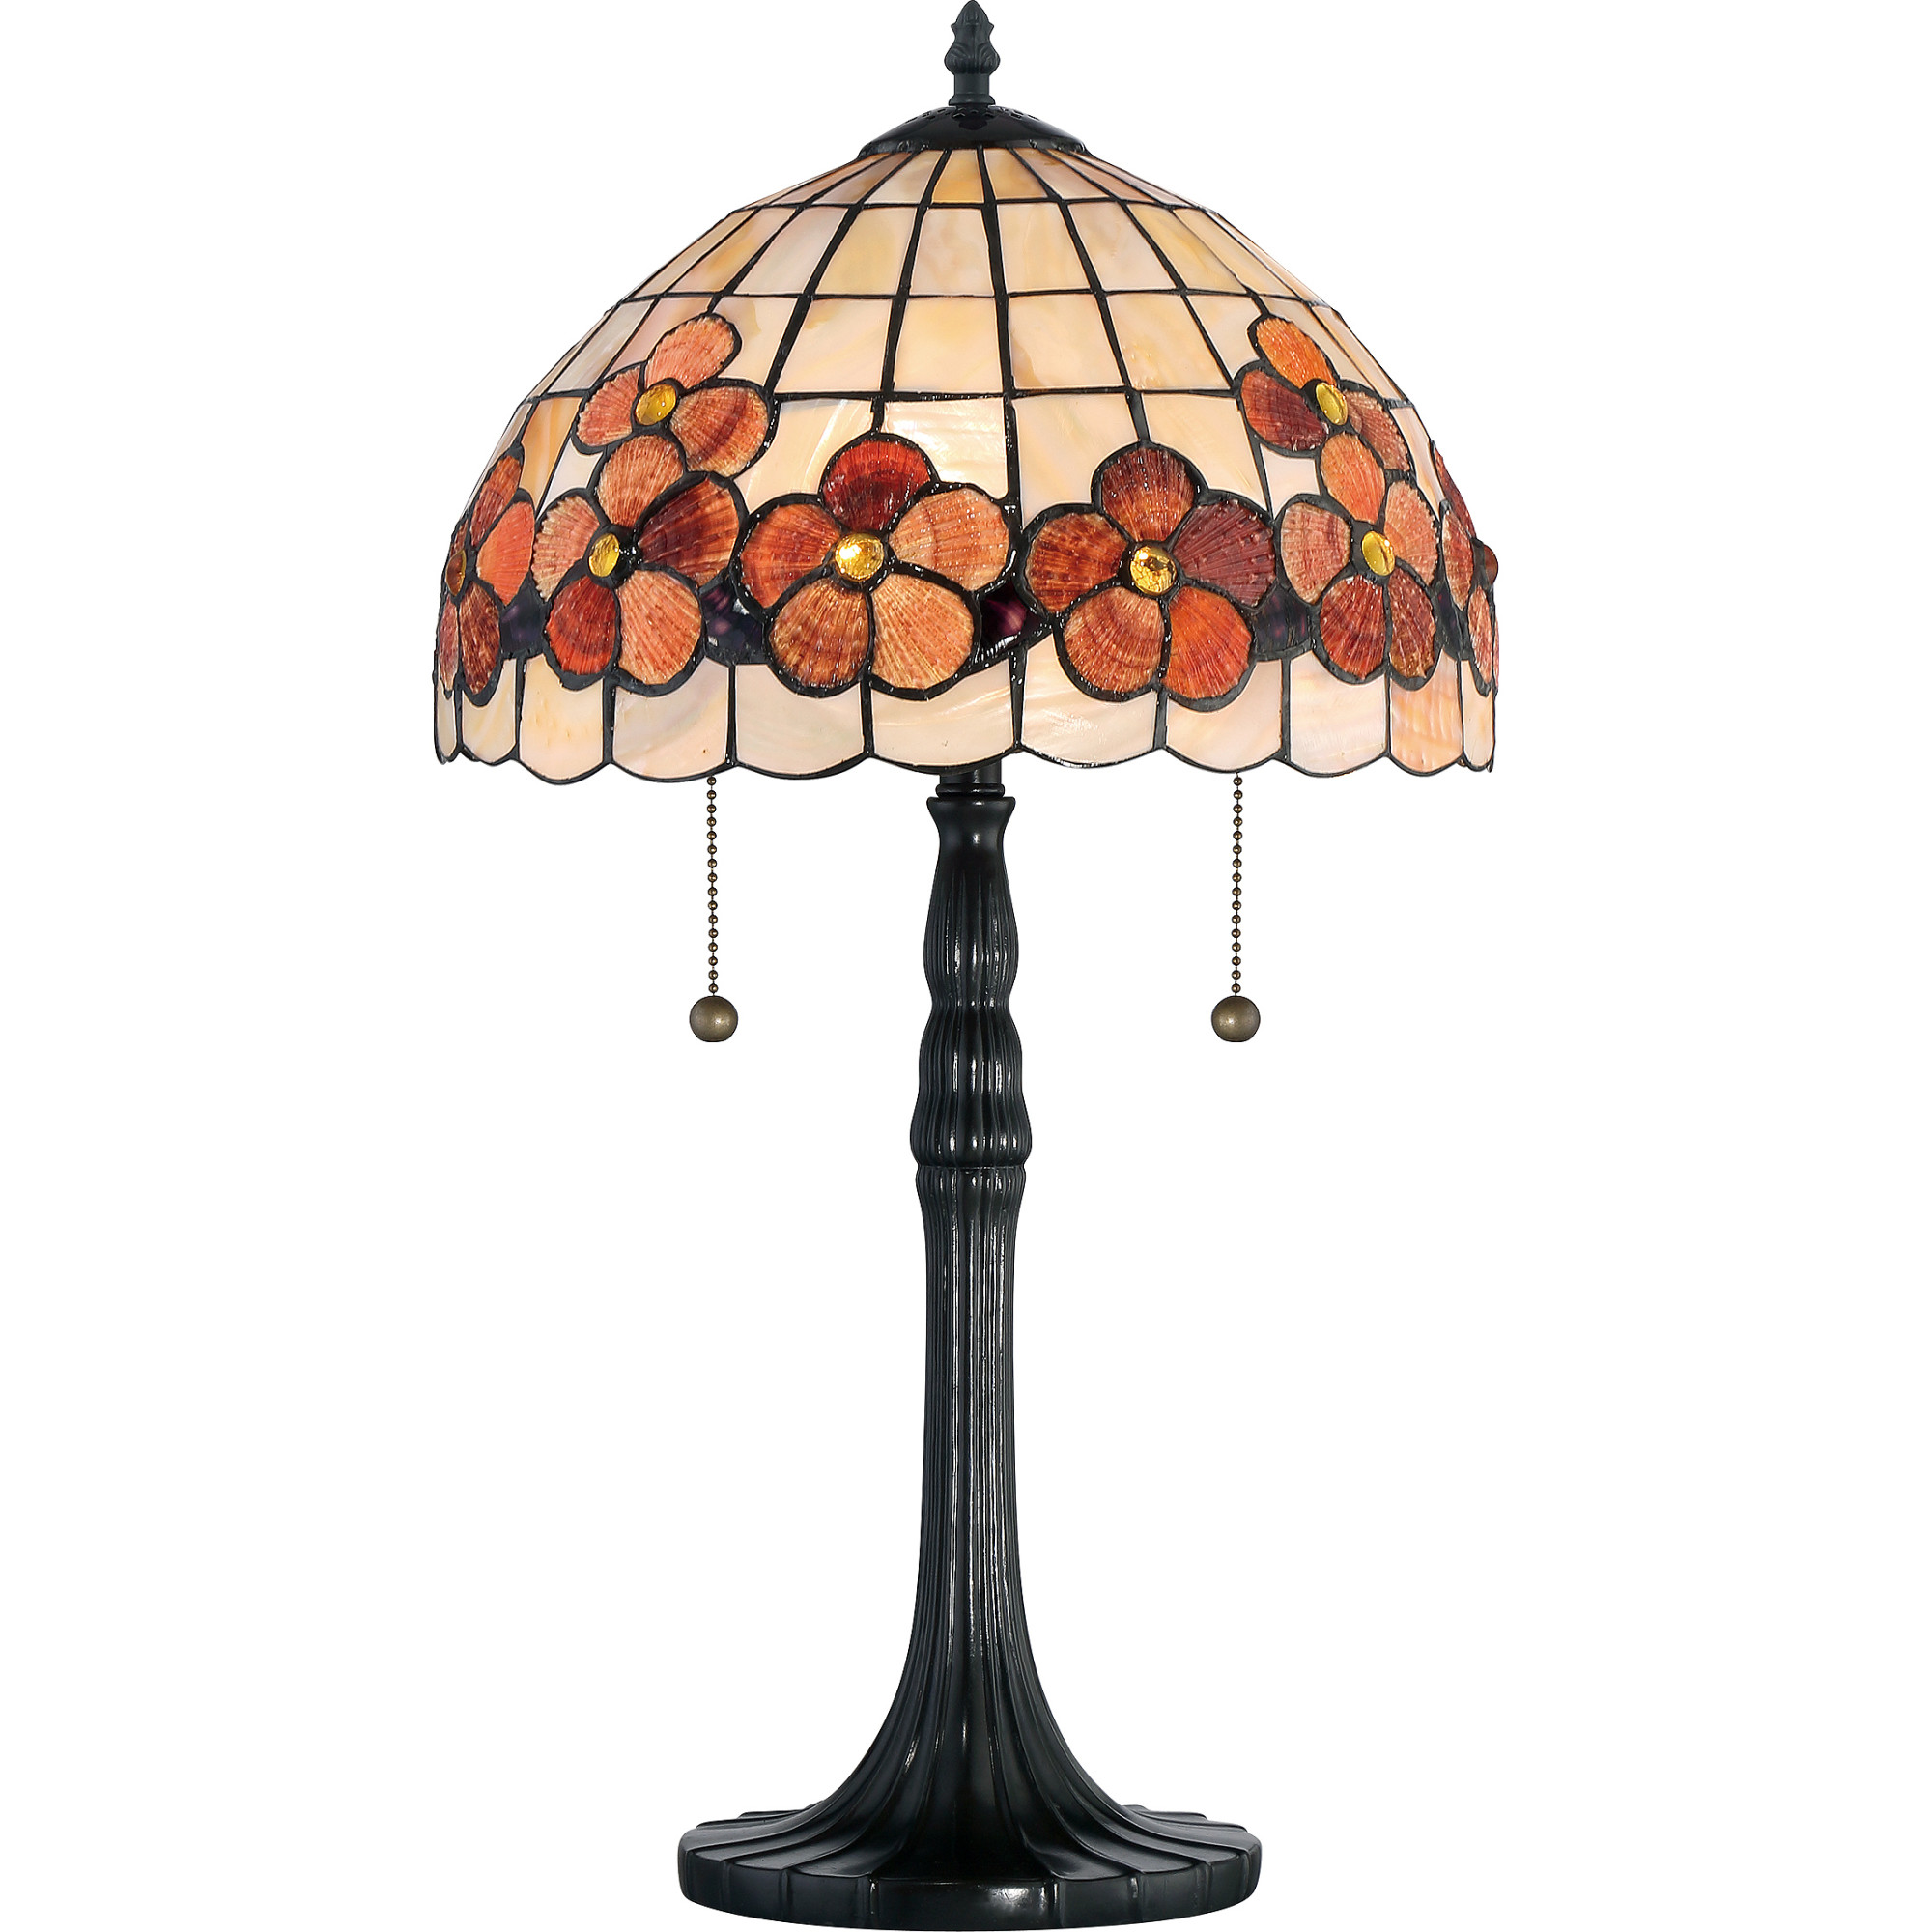 quoizel captiva light tall accent table lamp with sea stained glass shell dome west elm wine colored tablecloth dark wood coffee and end tables big modern storage chest cabinet